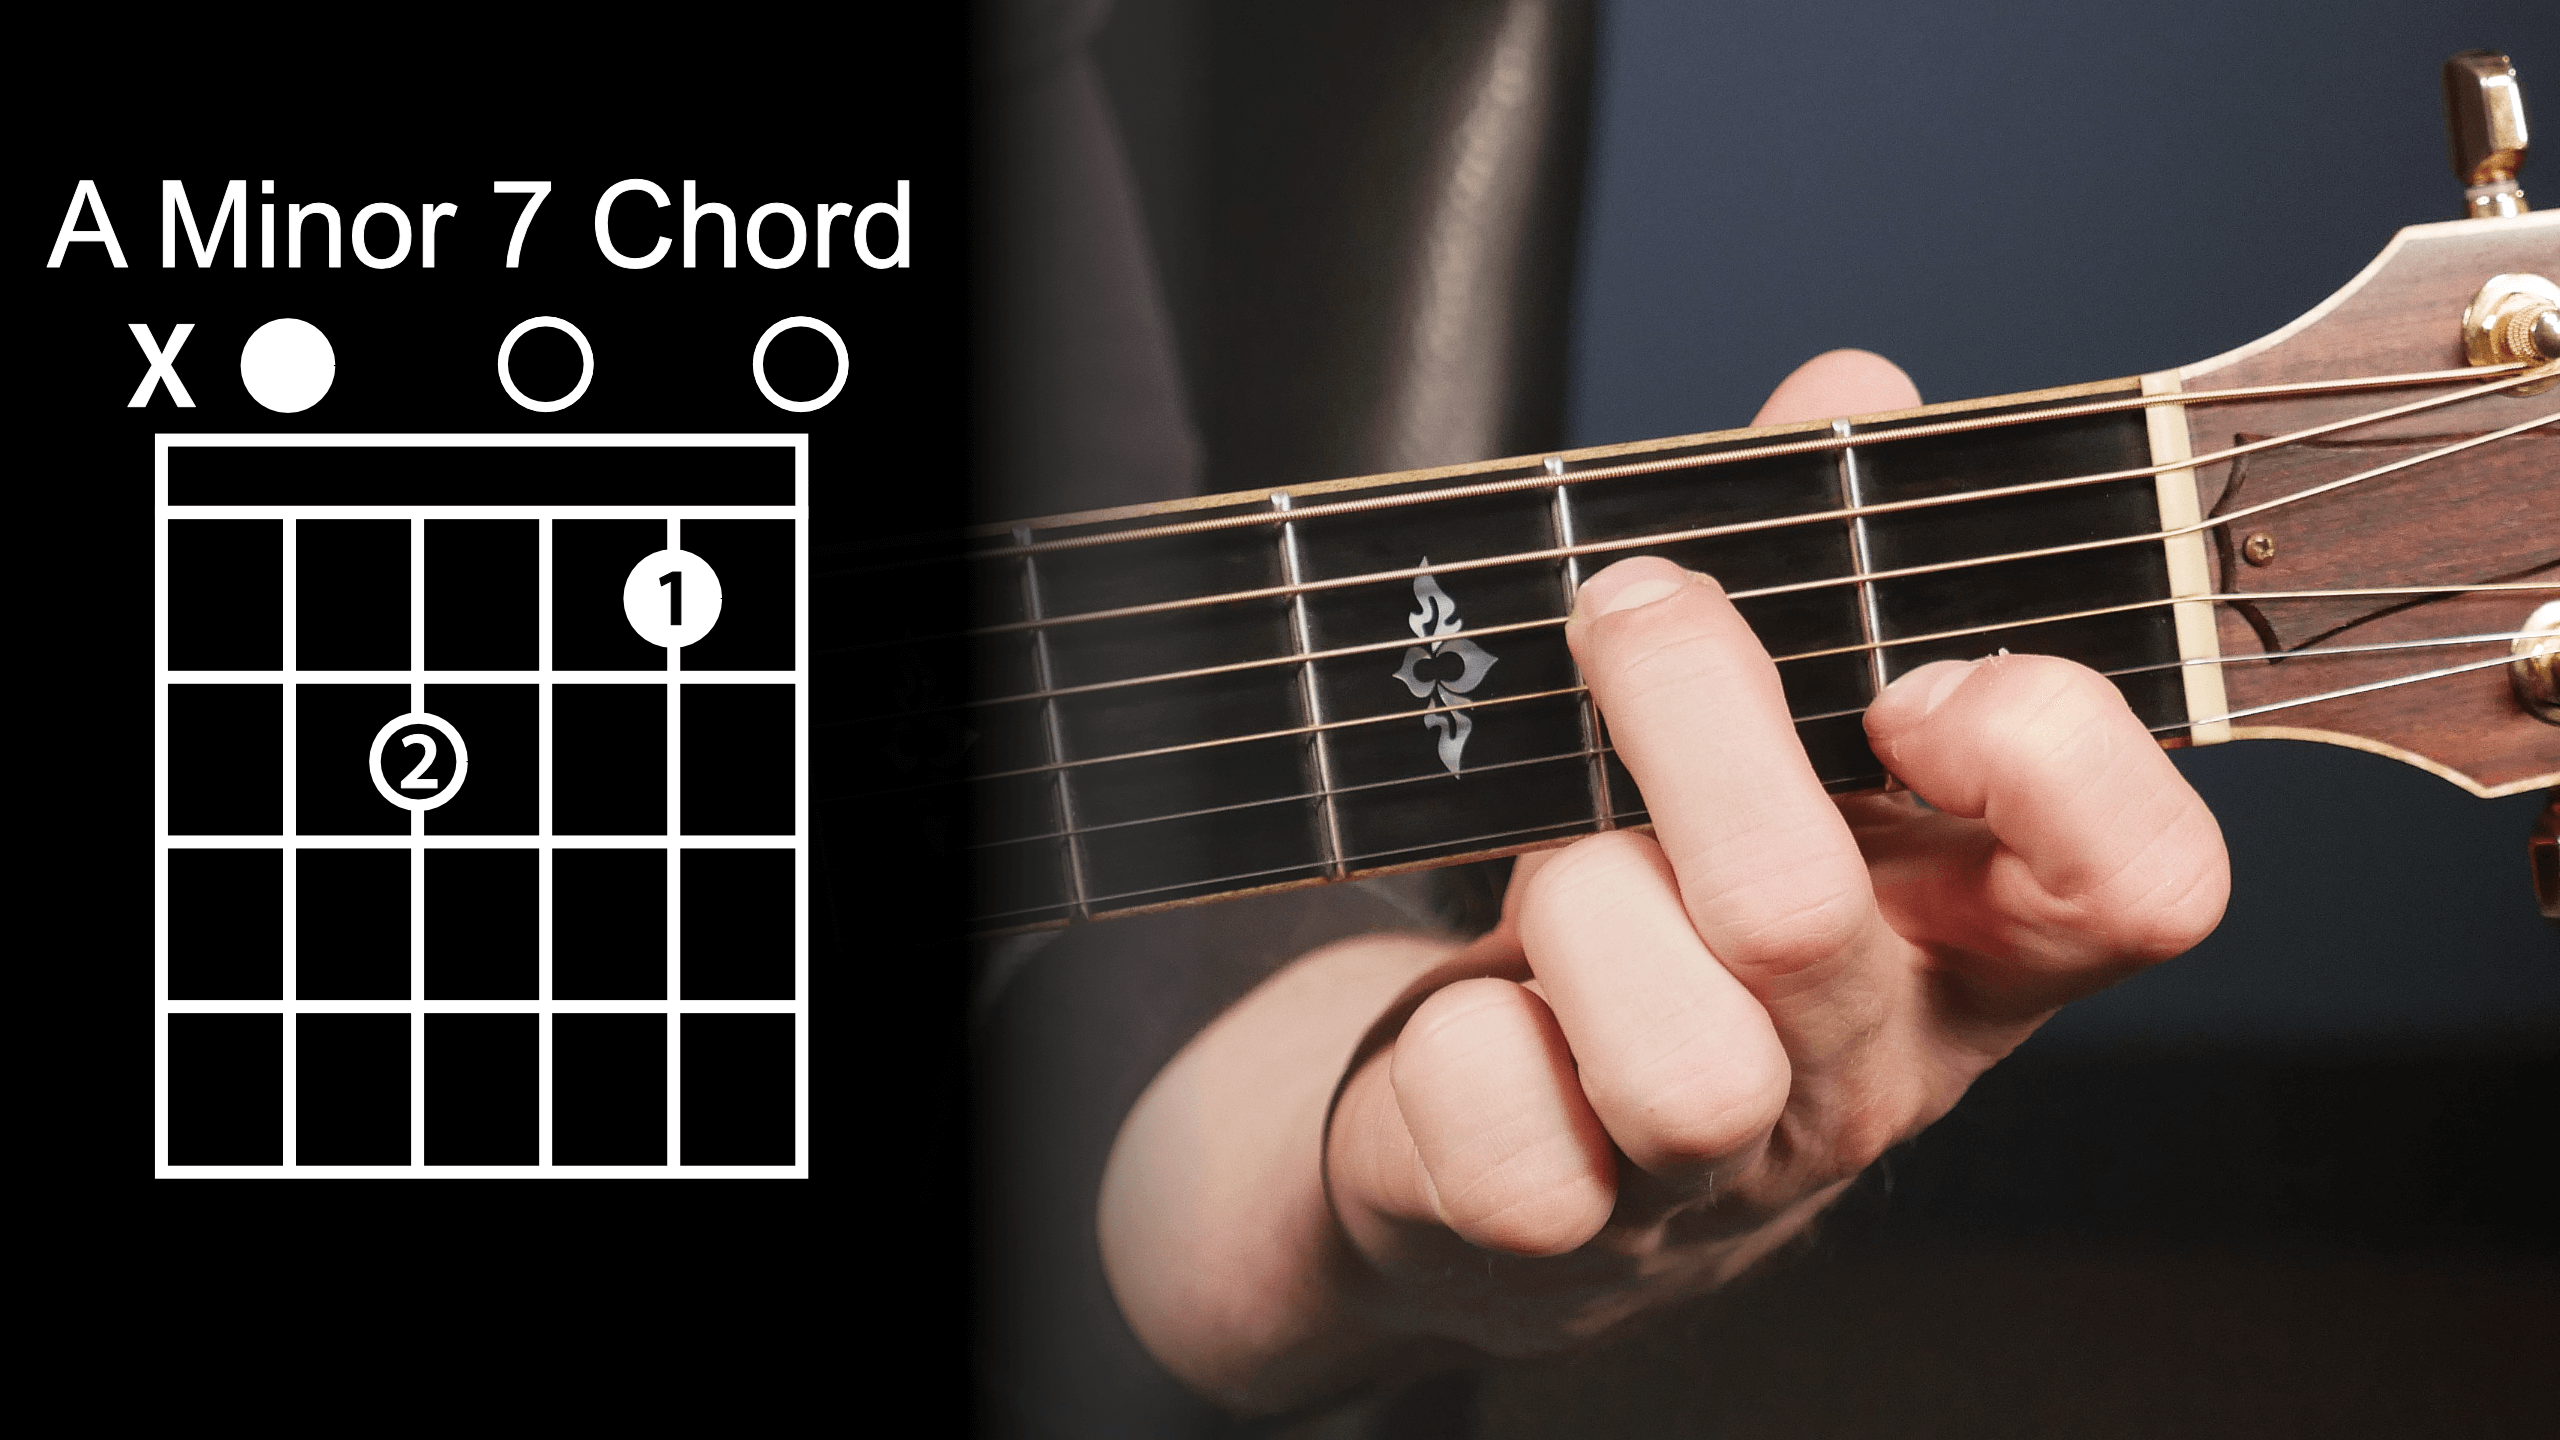 A Minor 7 Chord Diagram